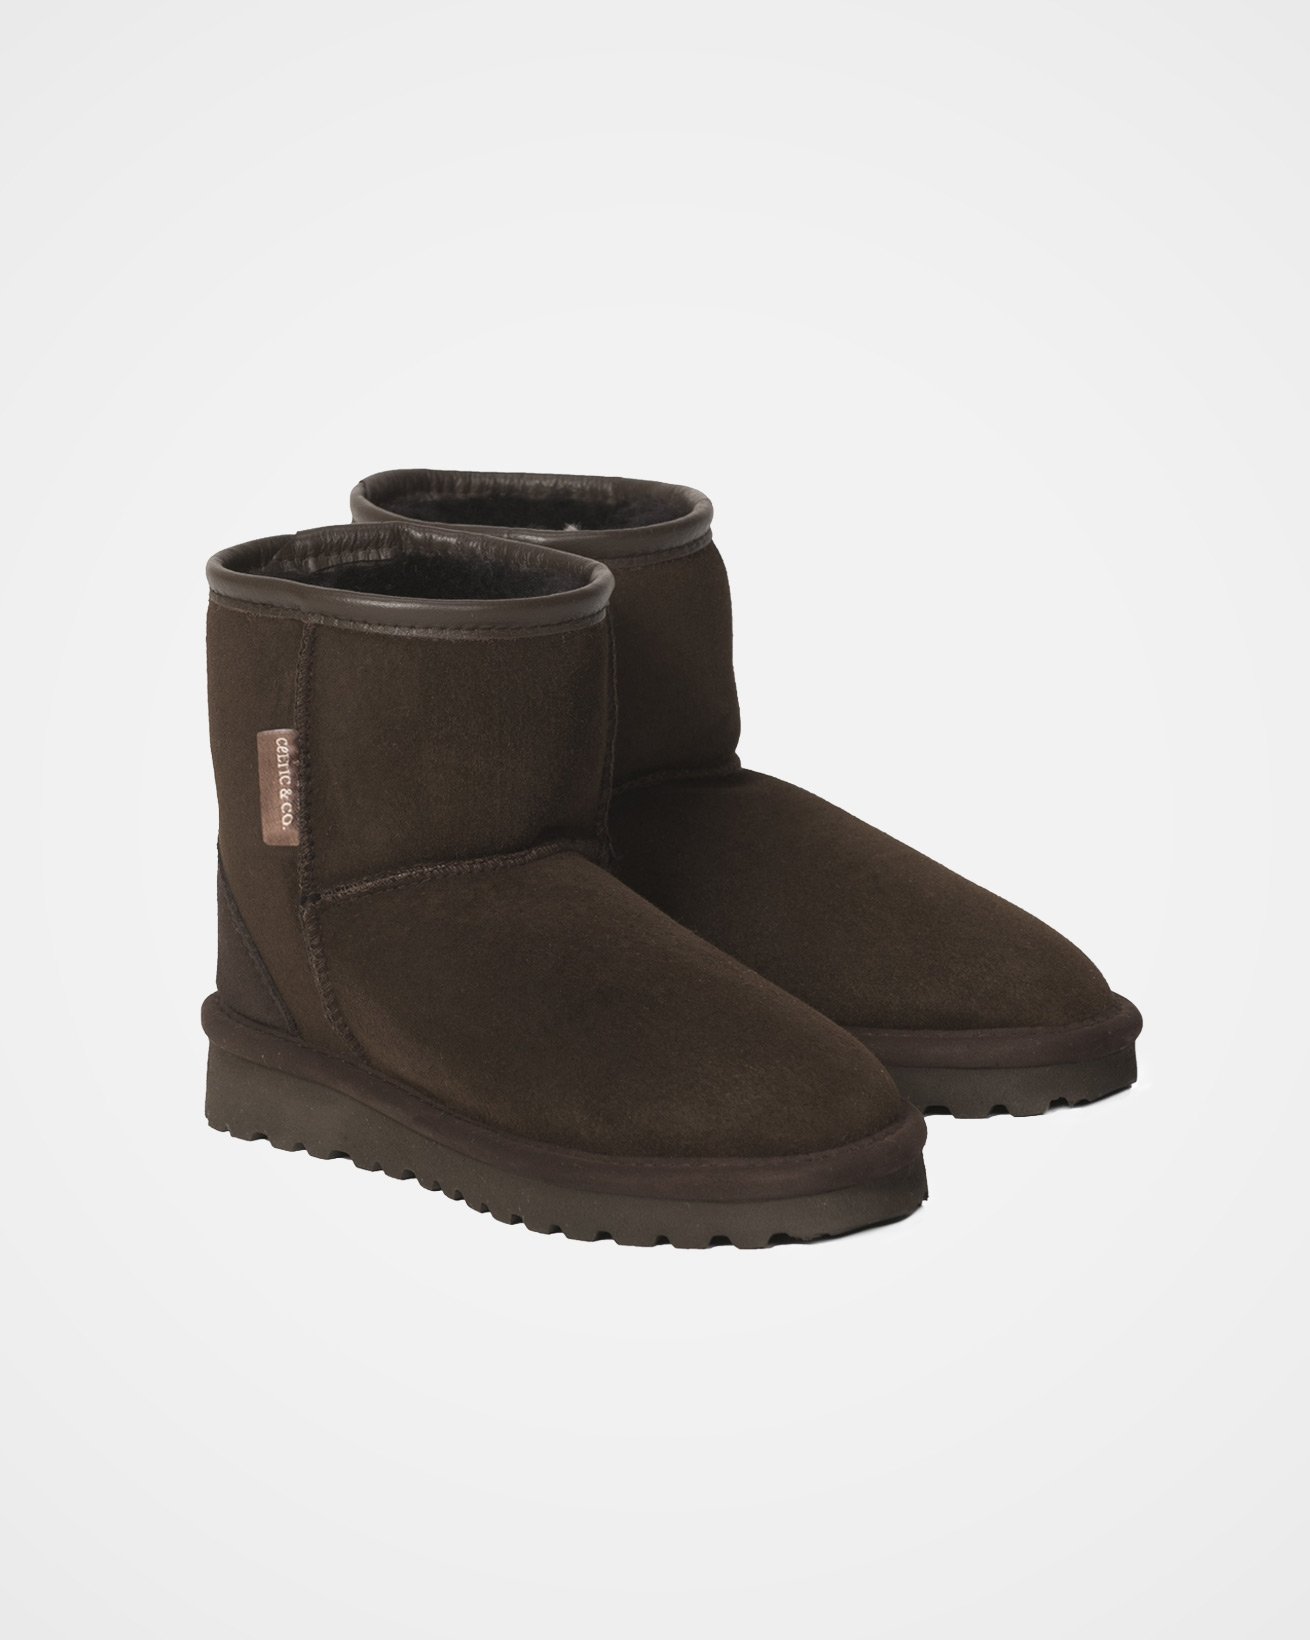 2037_classic-boots-shortie_mocca_pair.jpg